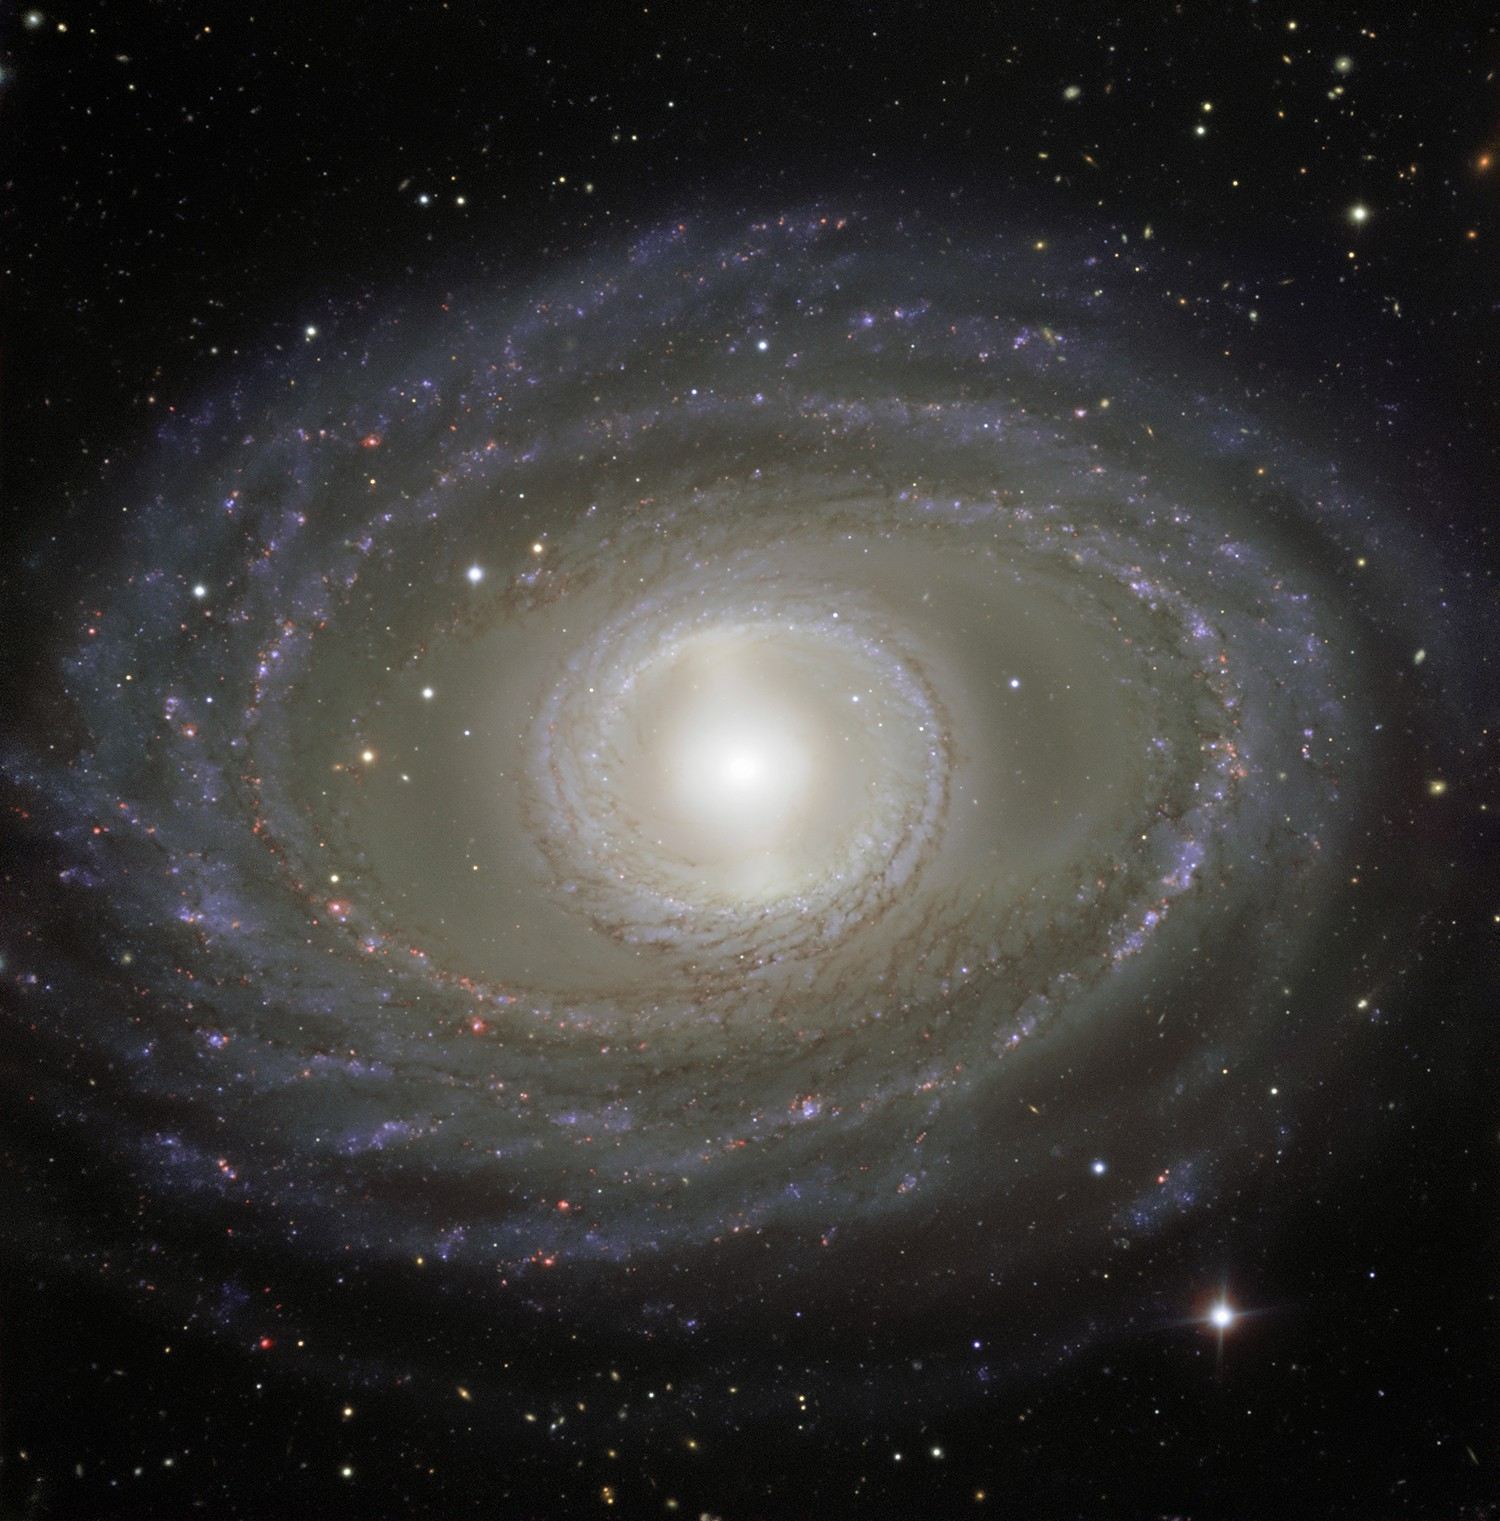 Galaxy NGC 1398, Very Large Telescope, 1 January 2018. Credit: ESO